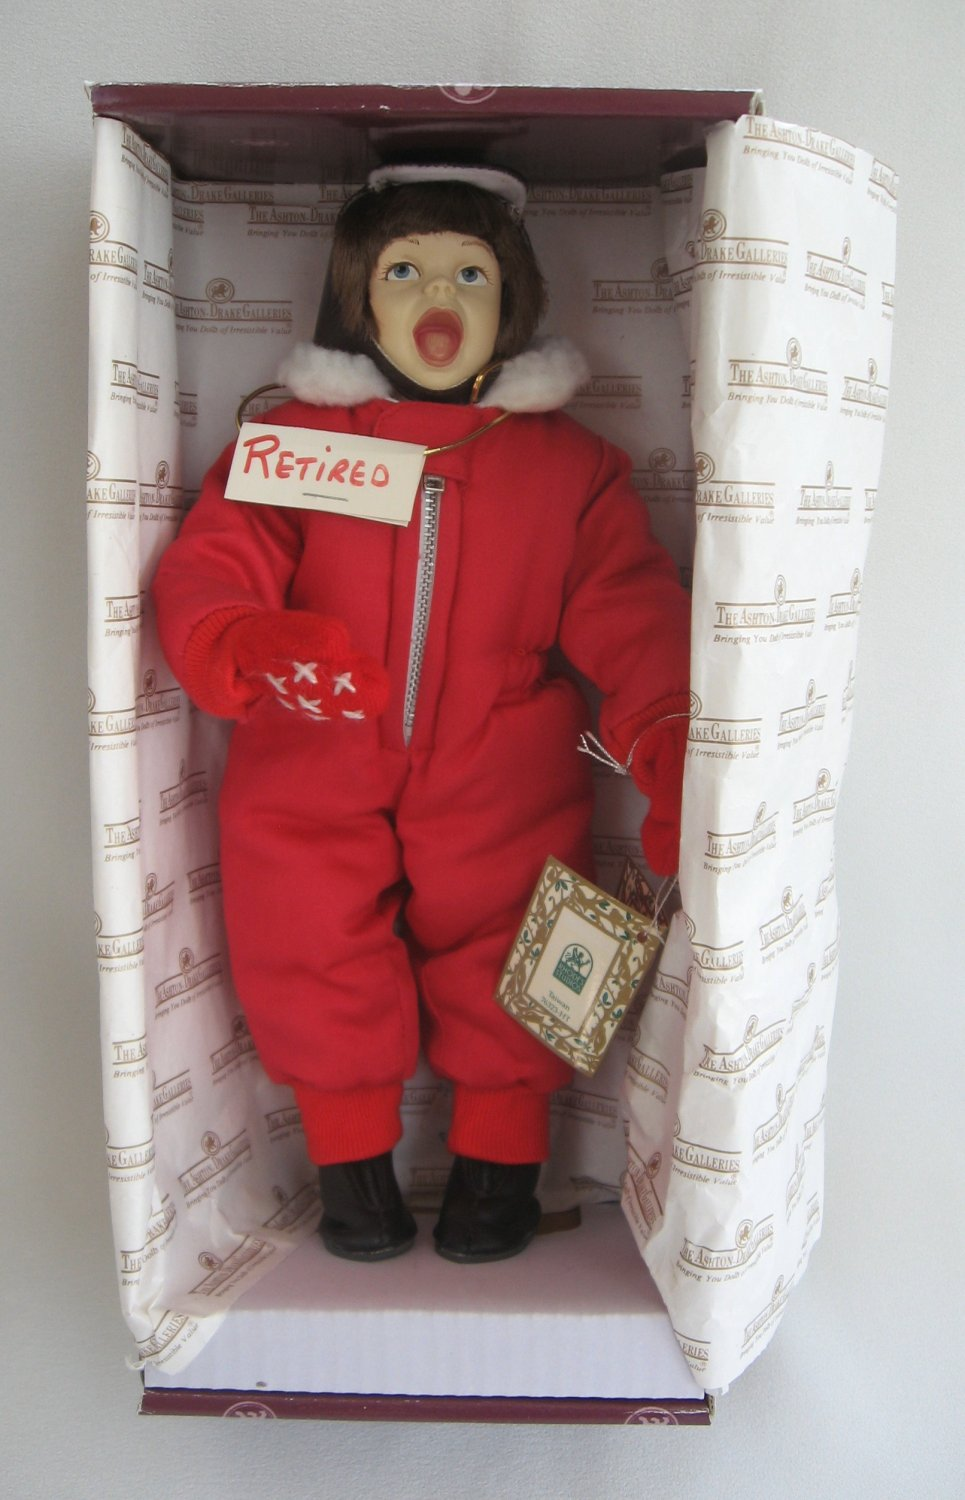 Scotty Merry Christmas Grandma Doll Norman Rockwell 1992 Limited Edition